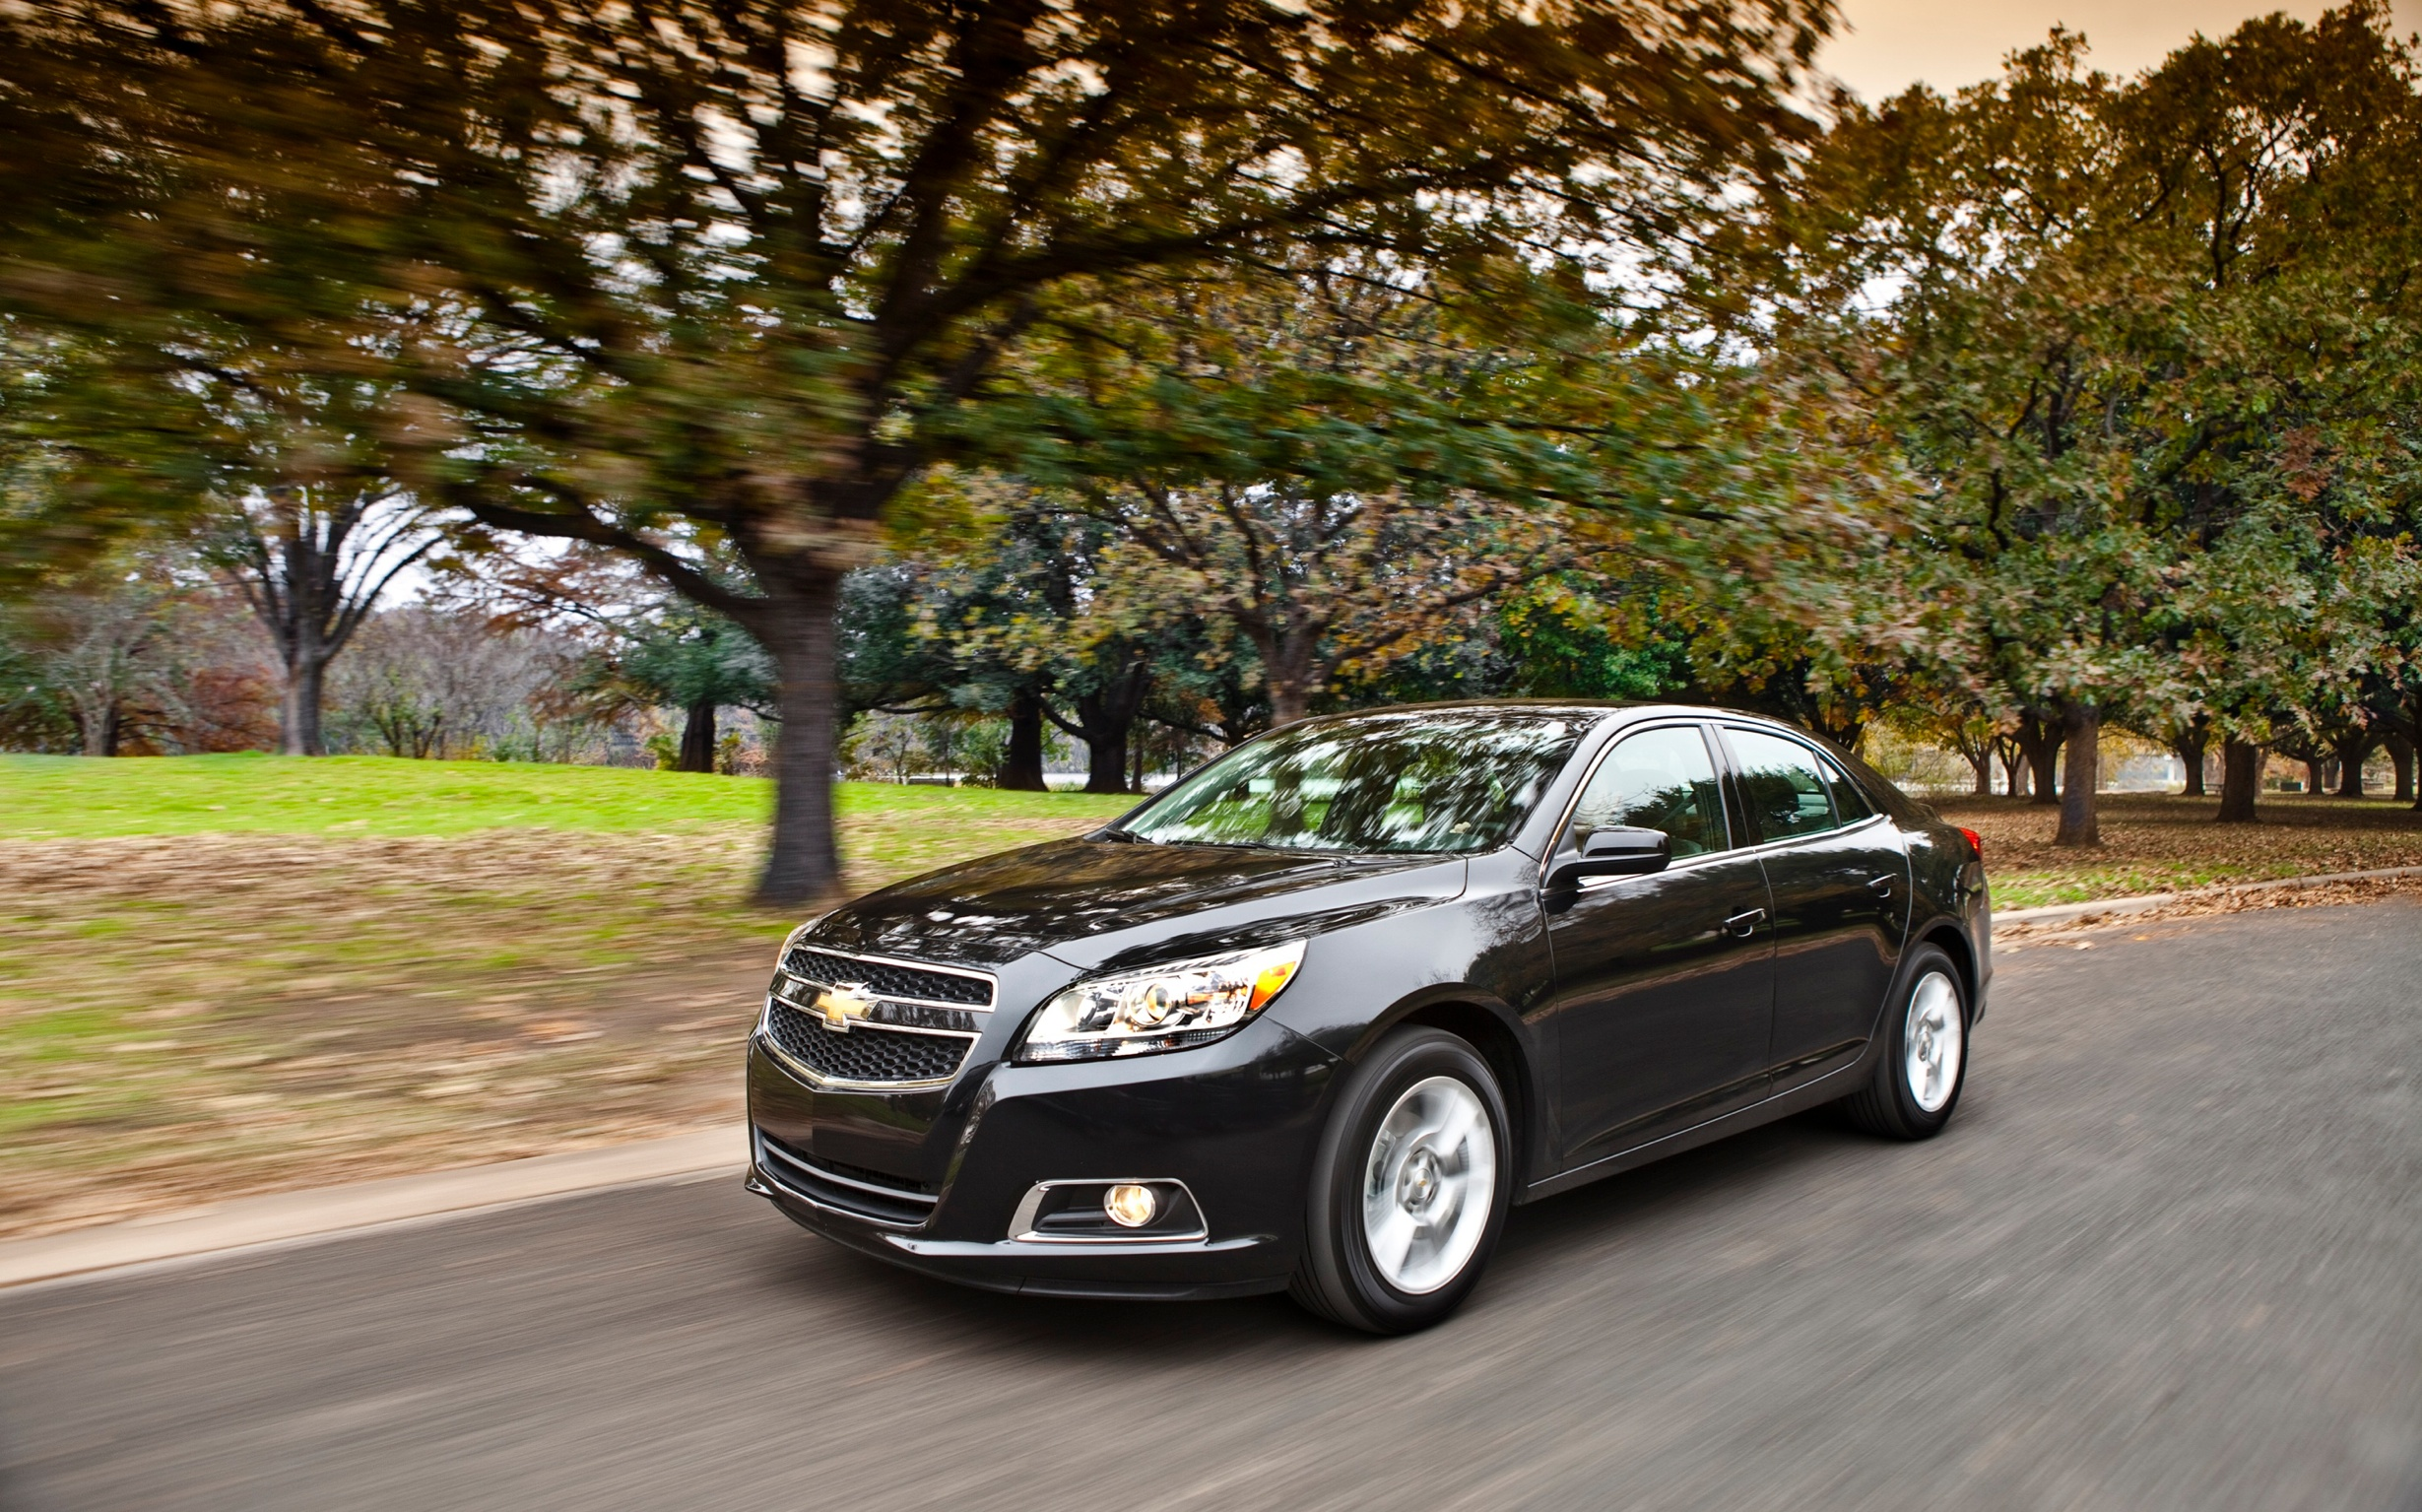 2013 chevy malibu eco review green car news and reviews. Black Bedroom Furniture Sets. Home Design Ideas